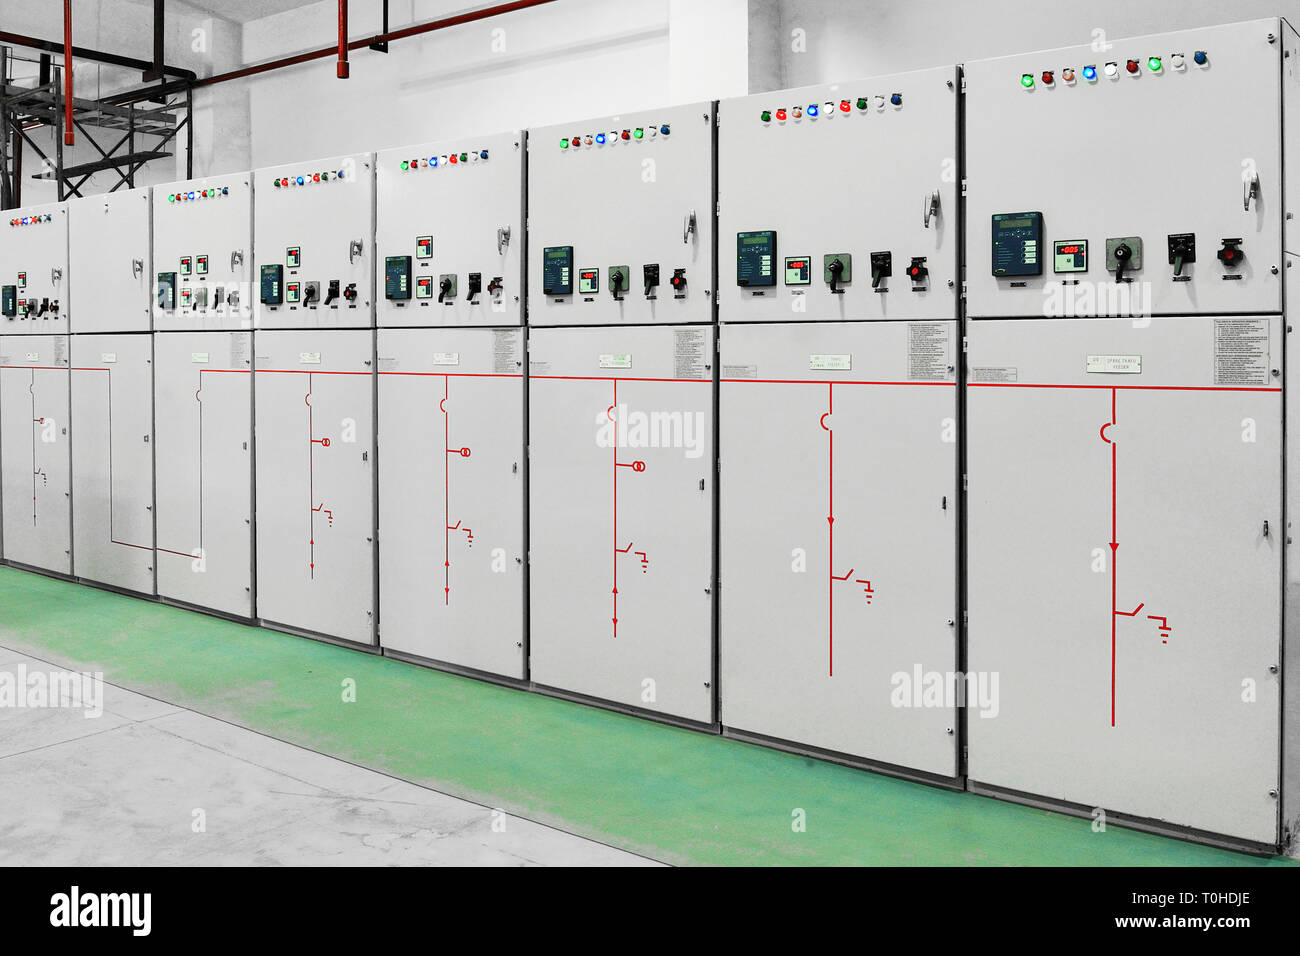 Switchboard Panels, electric substation, Mumbai, Maharashtra, India, Asia Stock Photo